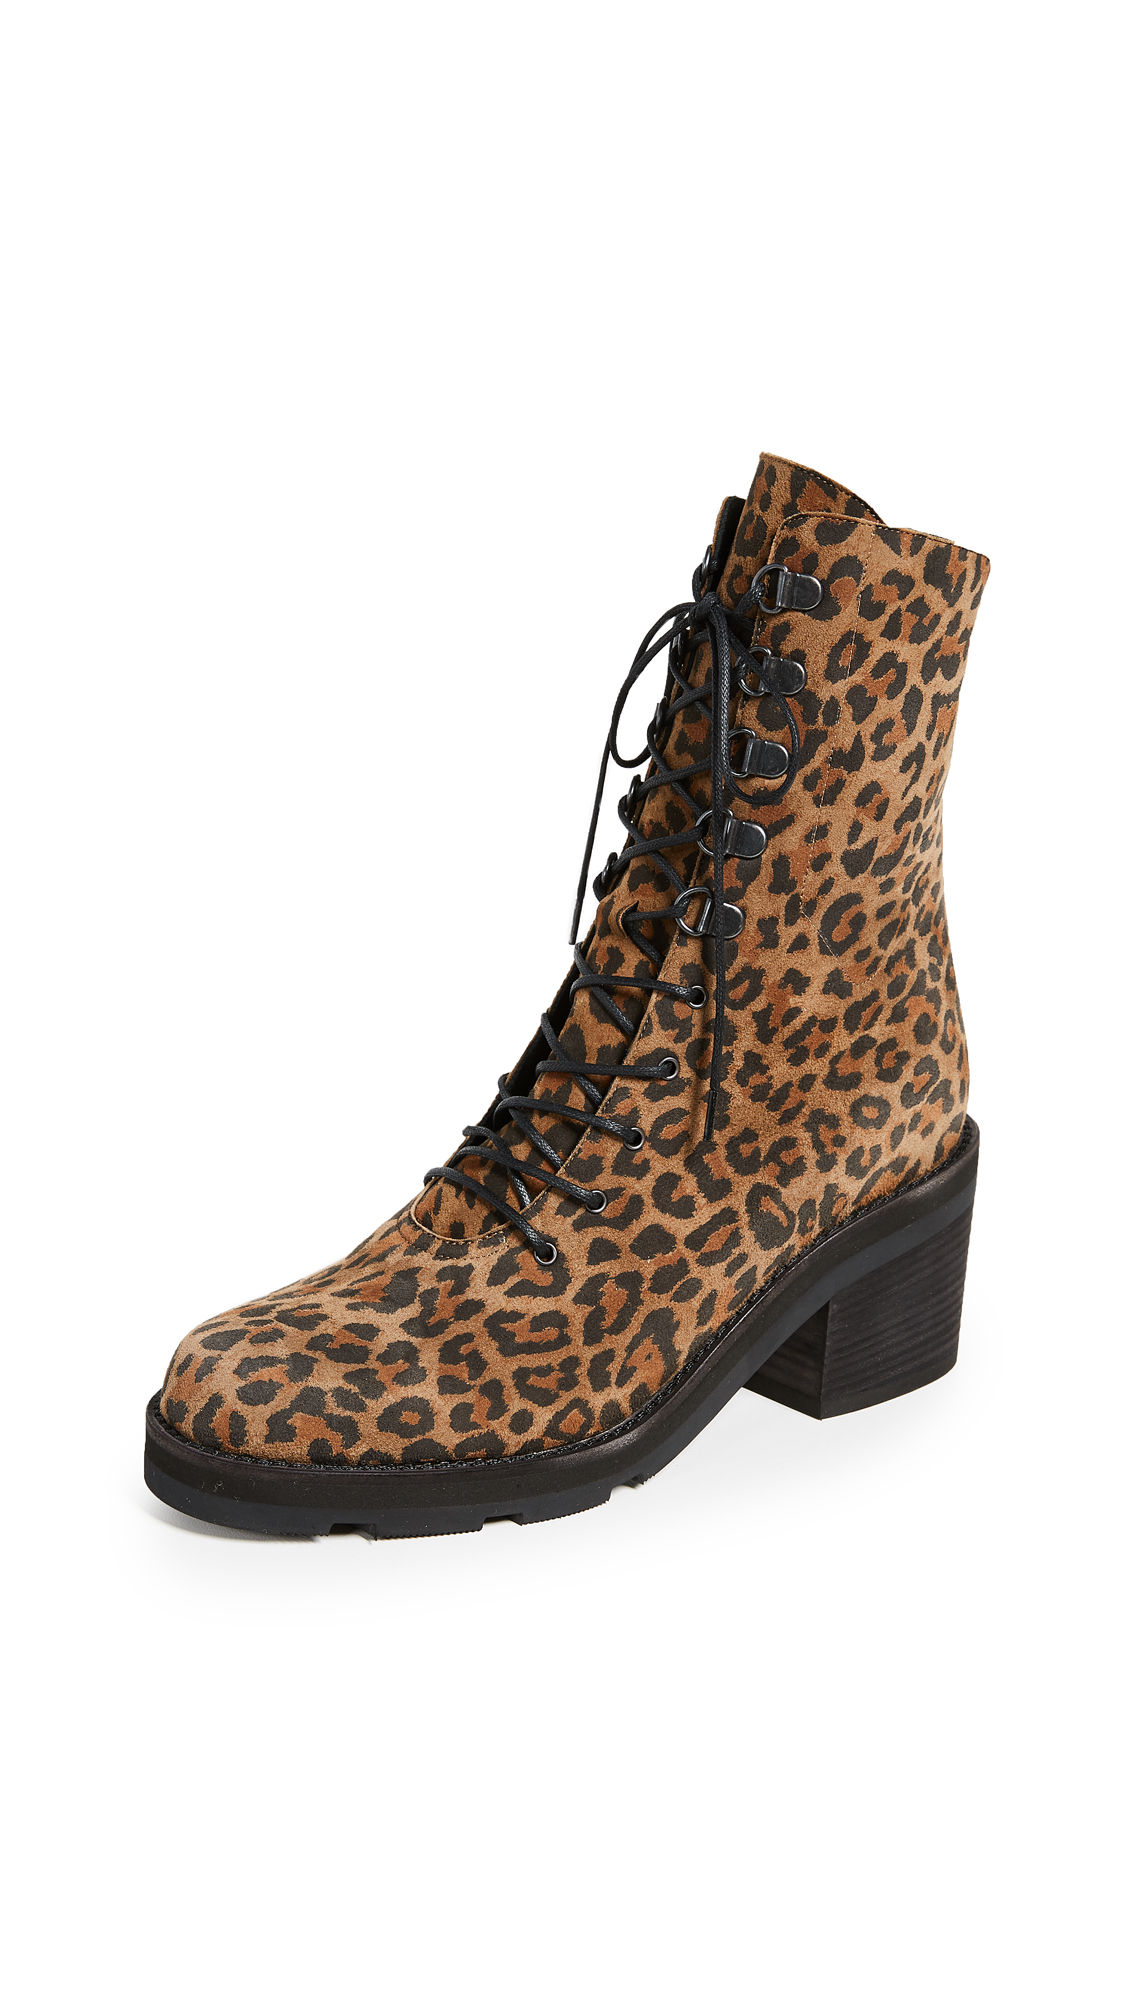 LD Tuttle Below Combat Boots - Leopard